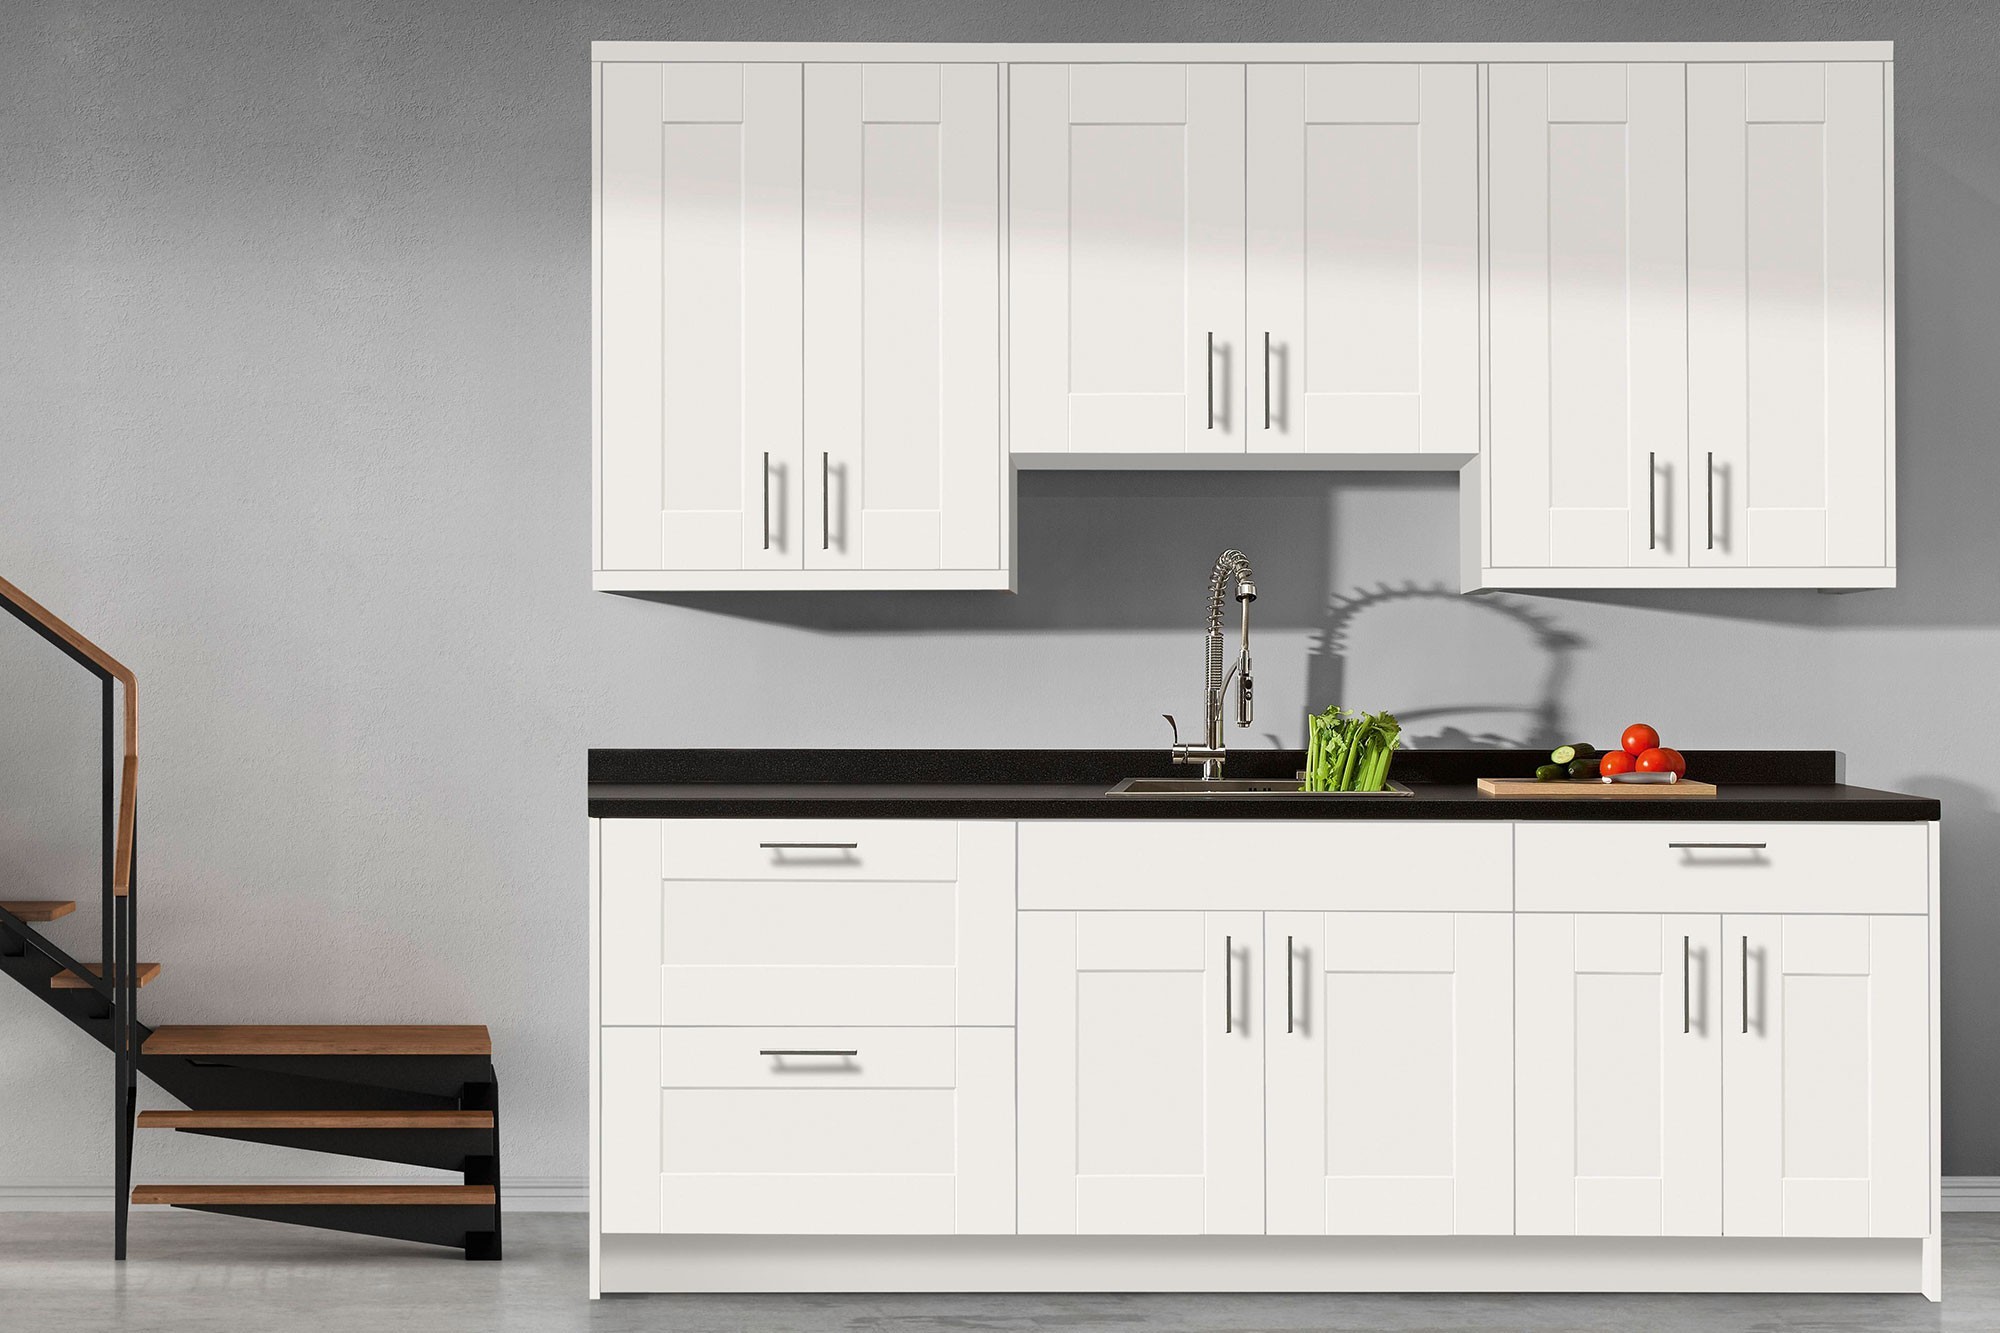 stock kitchen cabinets stock kitchen cabinets bianca white shaker kitchen cabinets in stock